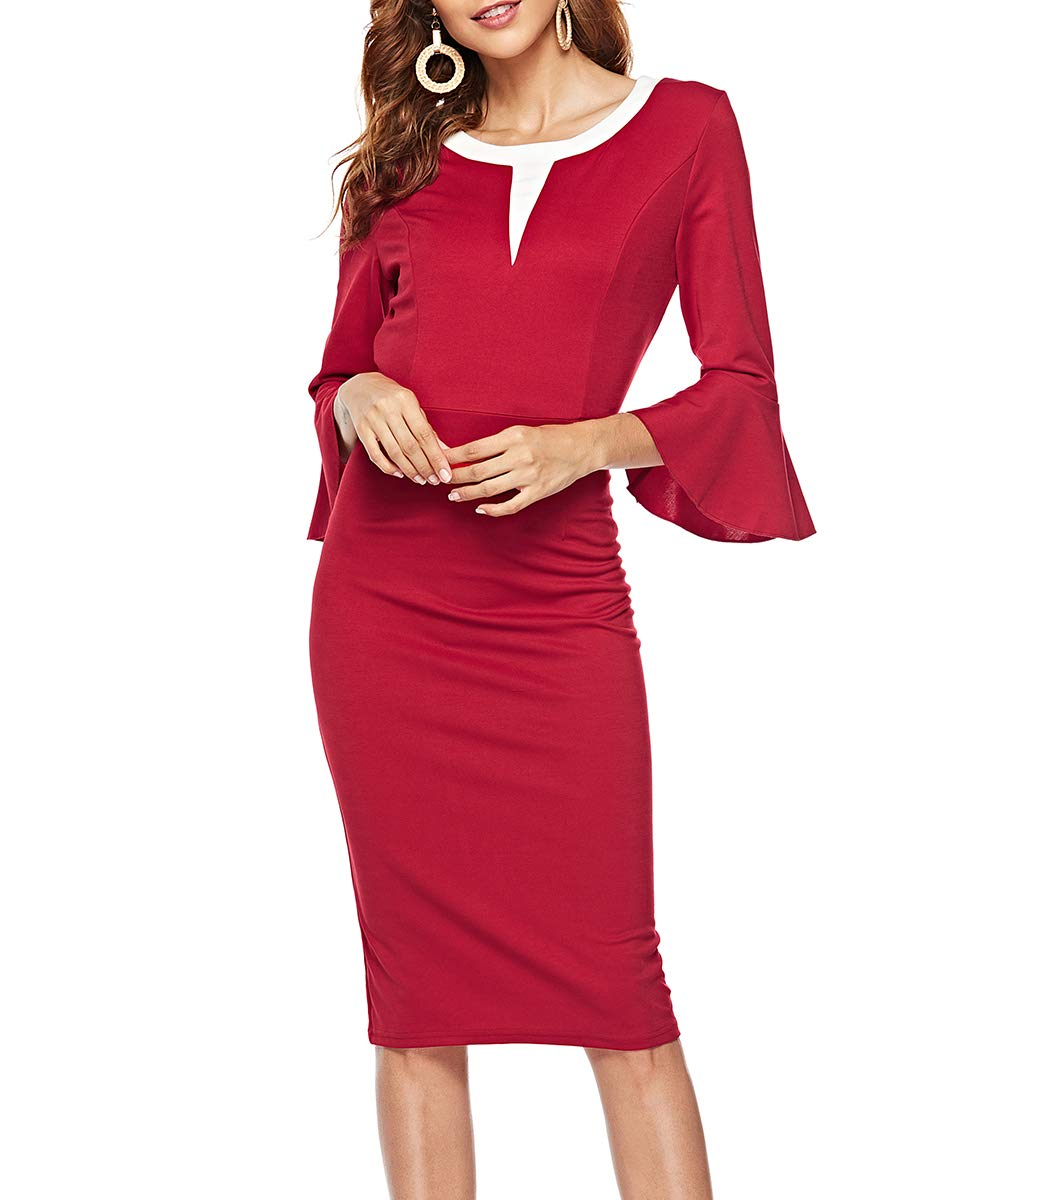 CEASIKERY Womens Elegant Flare Sleeves Office Pencil Wear to Work Bodycon Dress 45 A5045-C